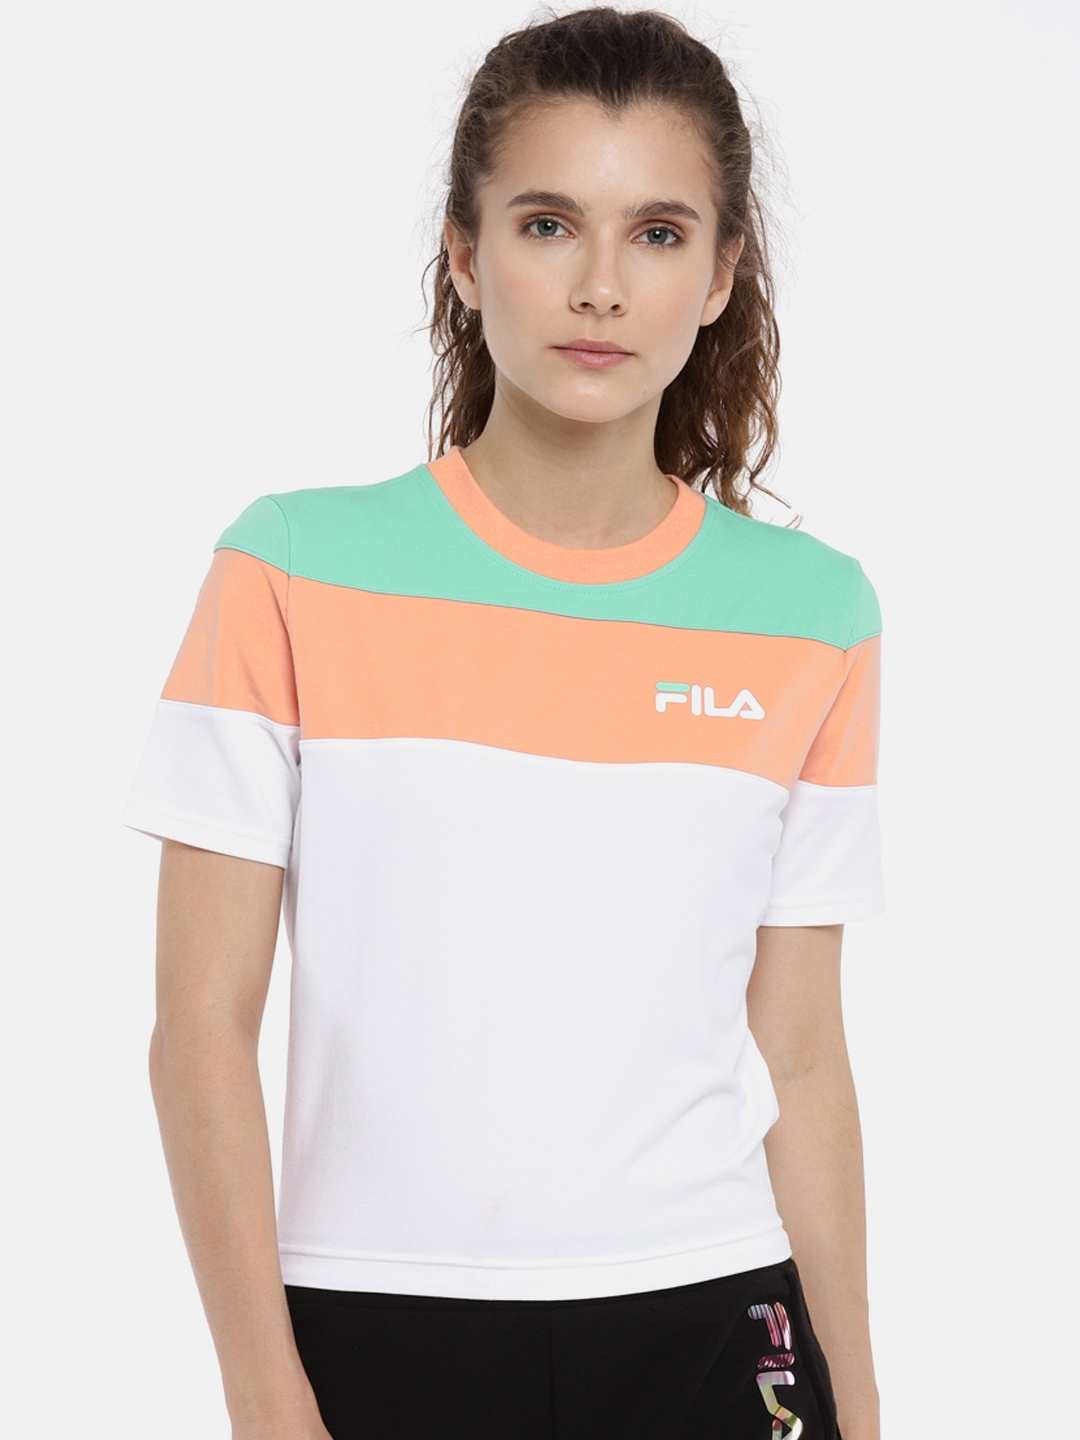 0151b537bbbf Buy FILA Women White & Peach Colourblocked MAYA Round Neck T Shirt ...